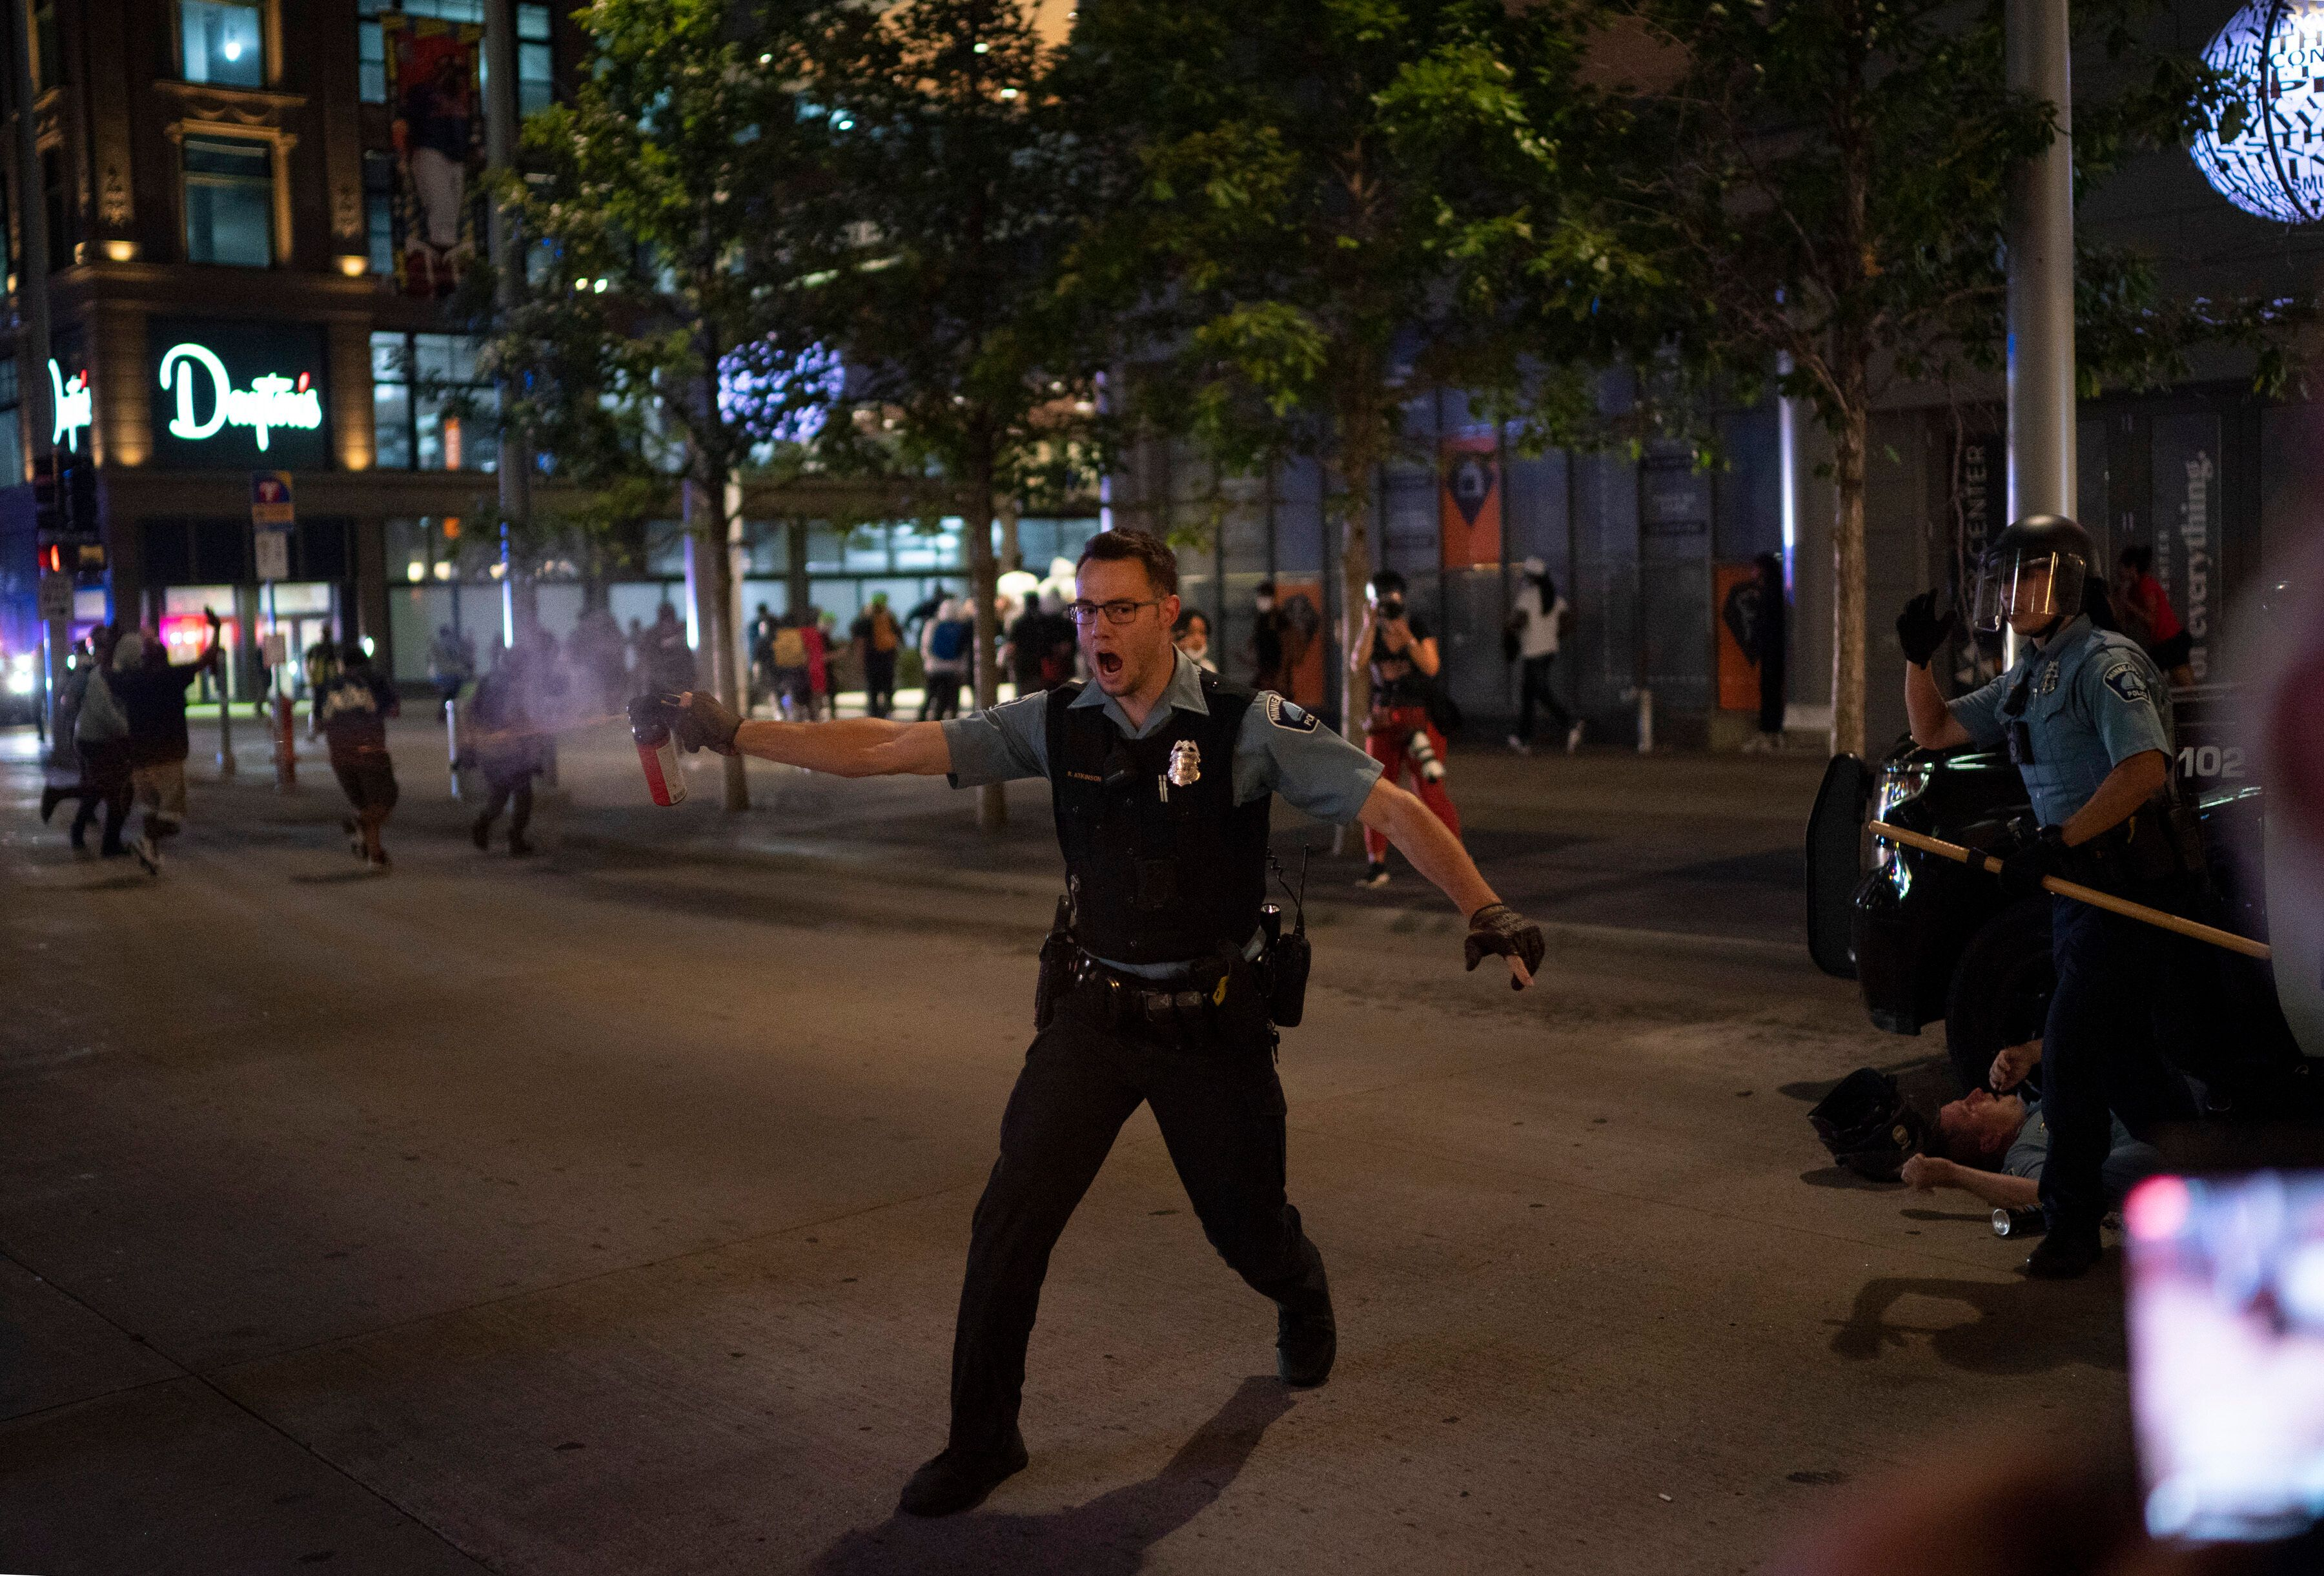 Police spray a substance to clear the area where a colleague was injured on the Nicollet Mall Wednesday in Minneapolis.